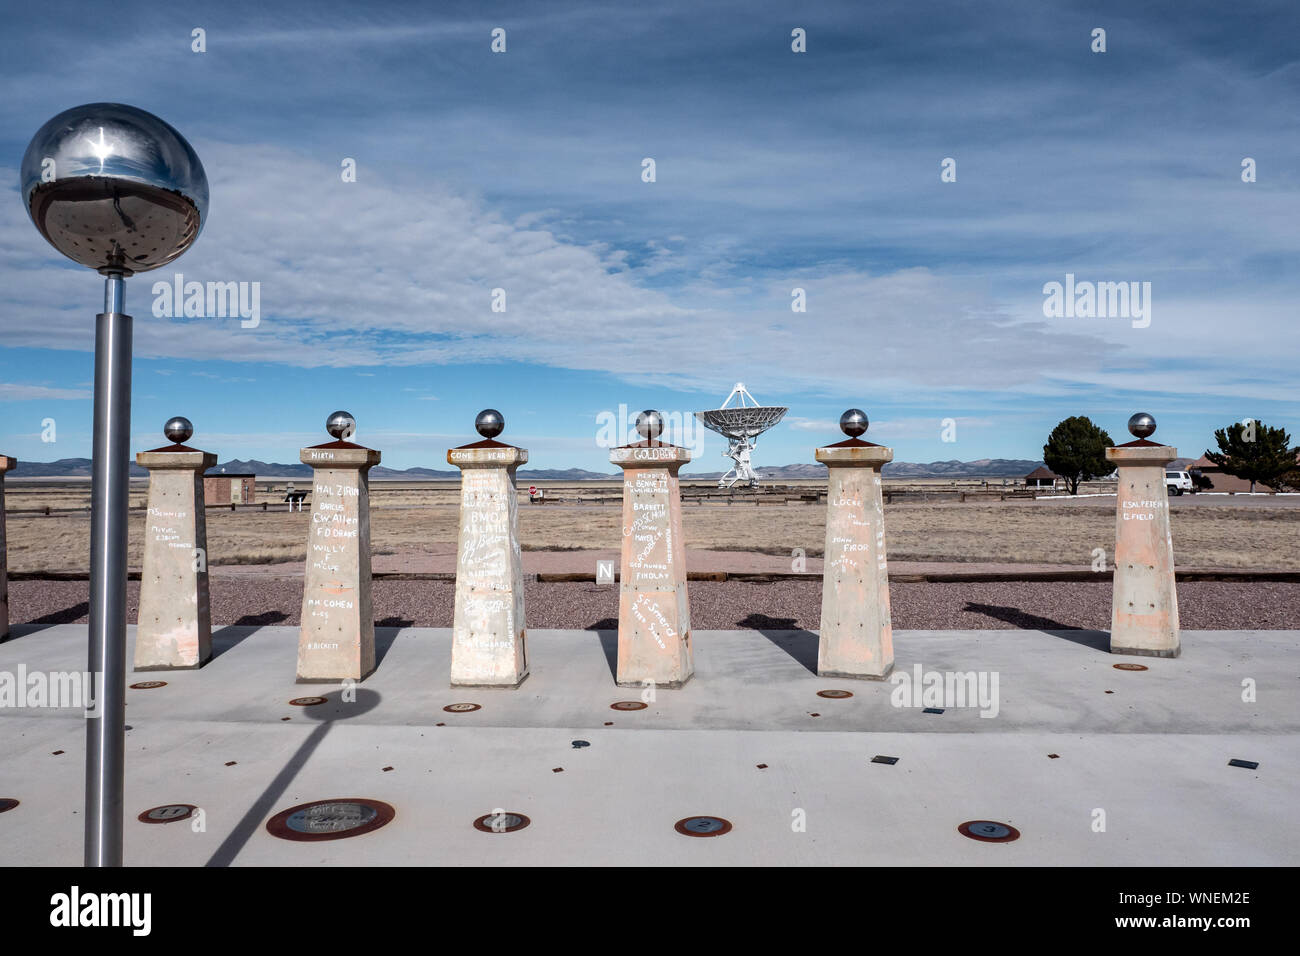 Very Large Array (VLA) in New Mexico Stock Photo